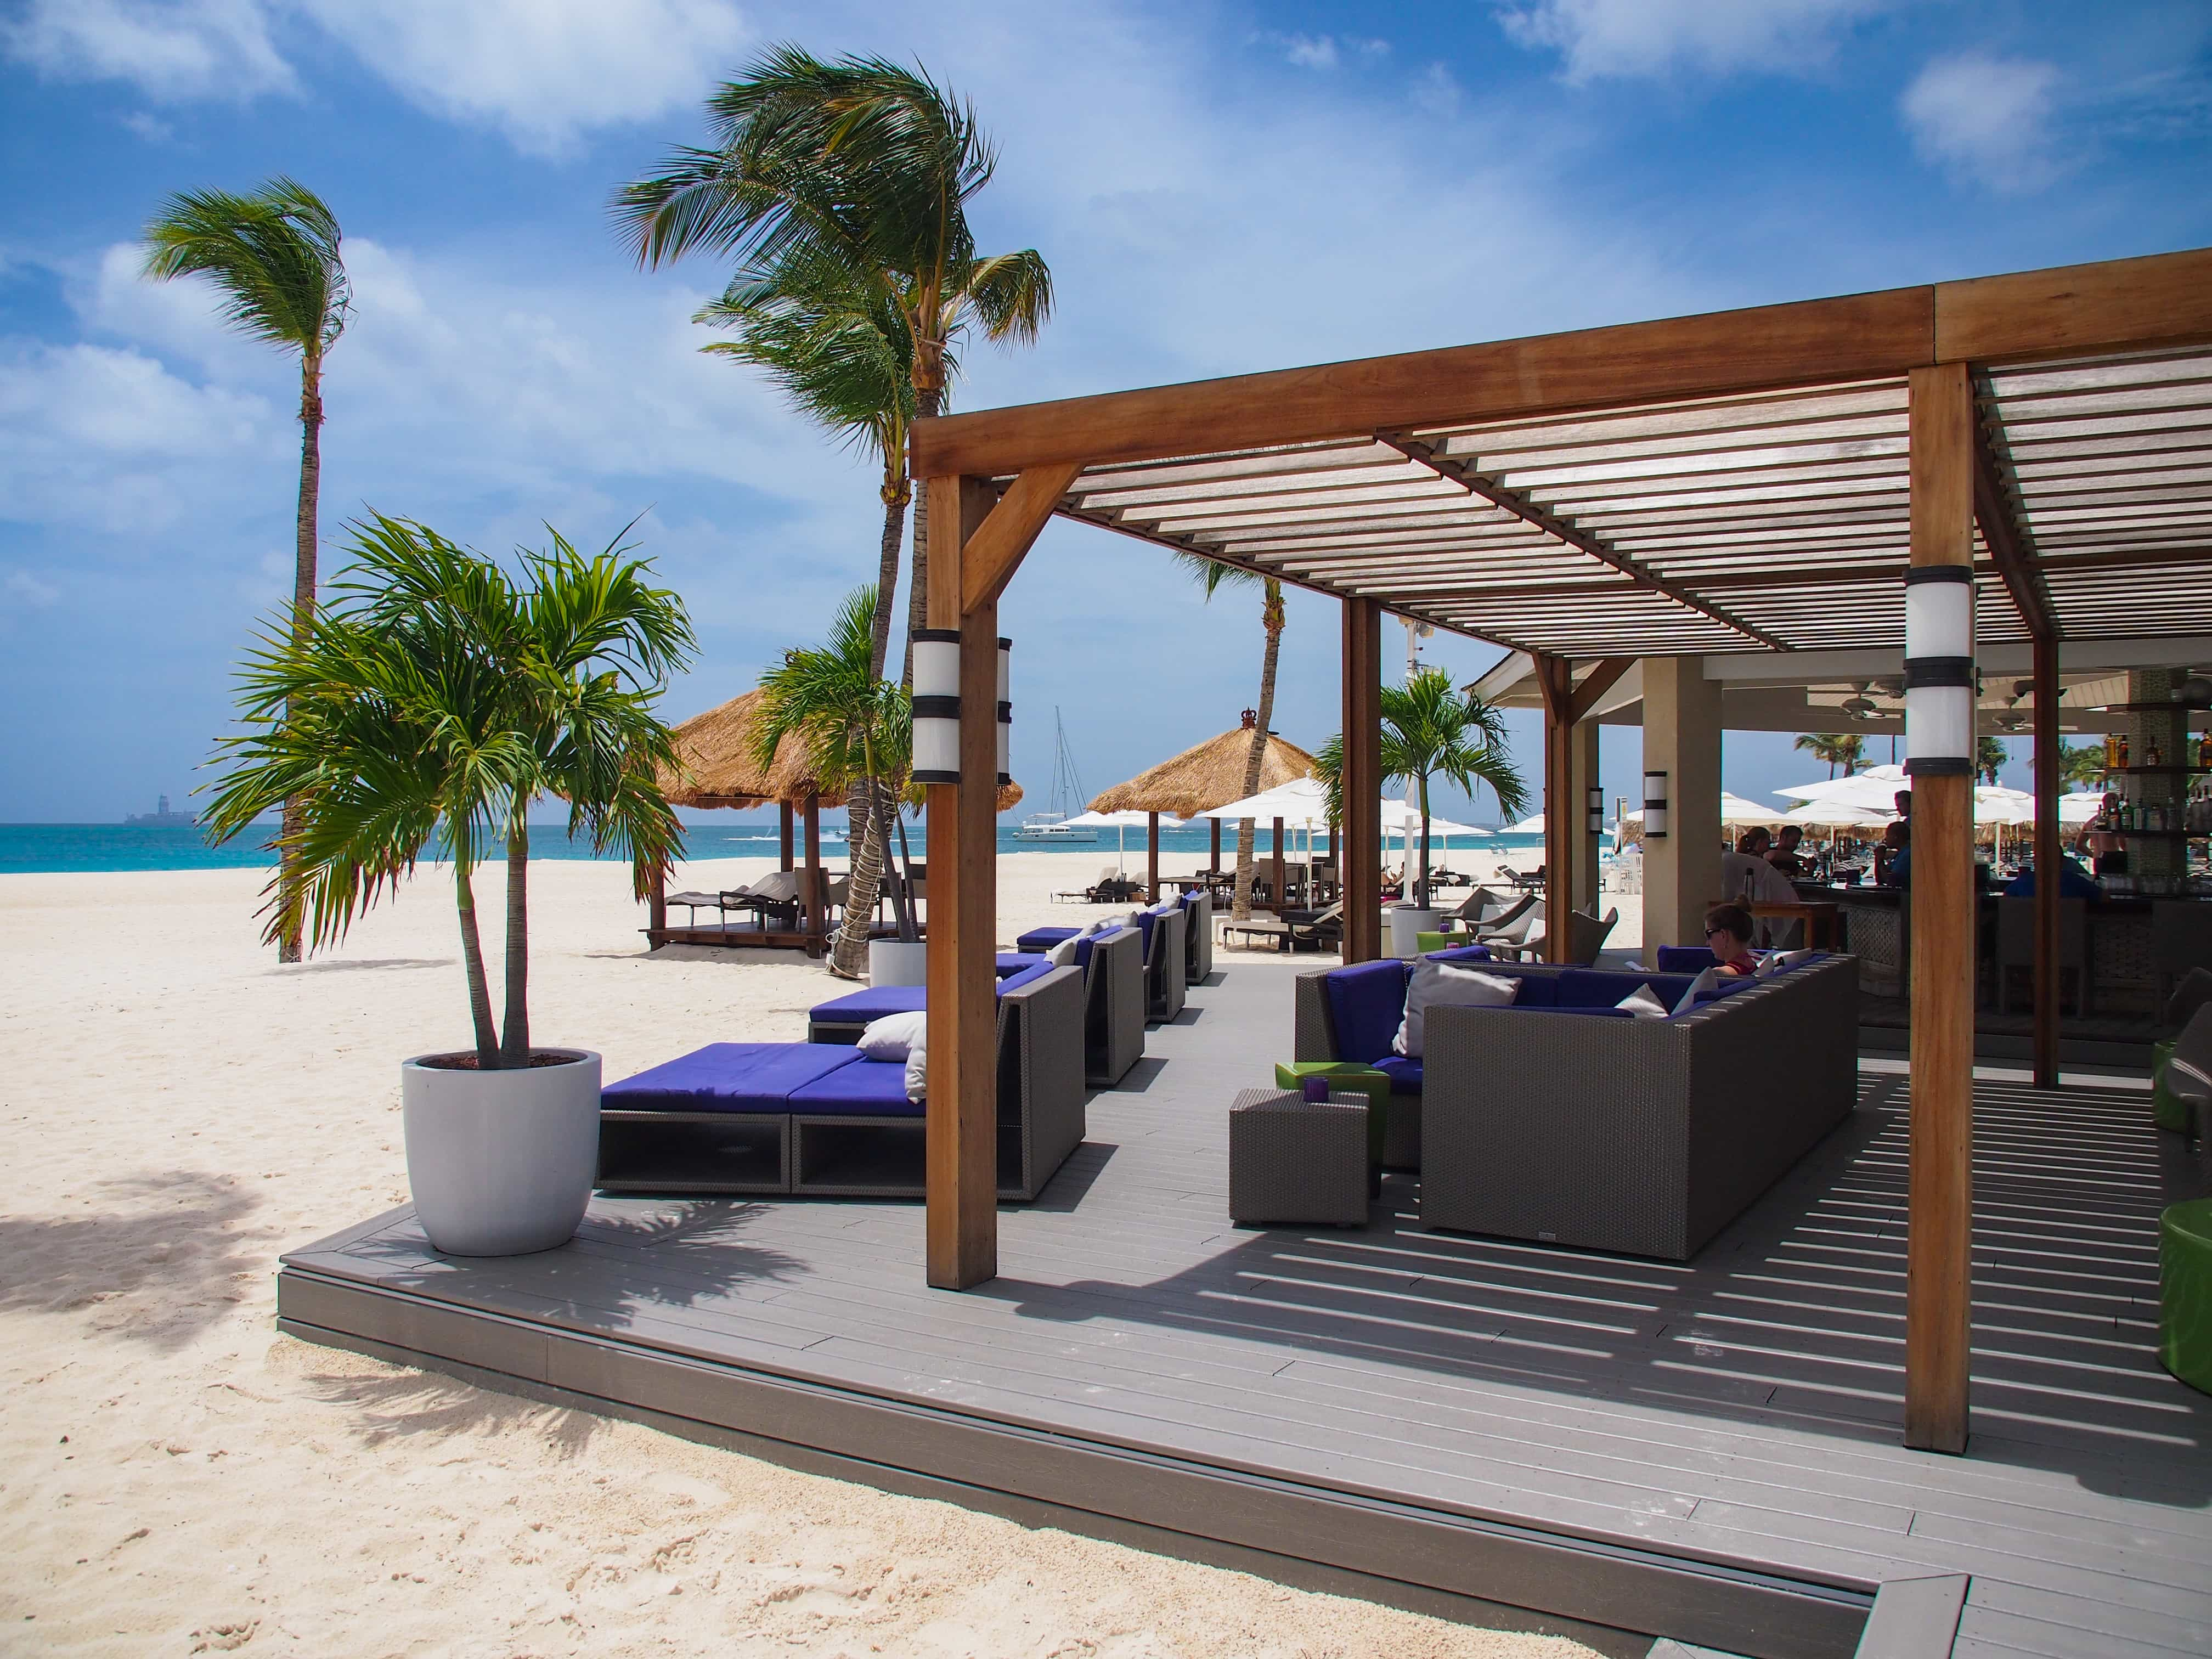 Beachside at Bucuti and Tara Beach Resort, Aruba | SBPR